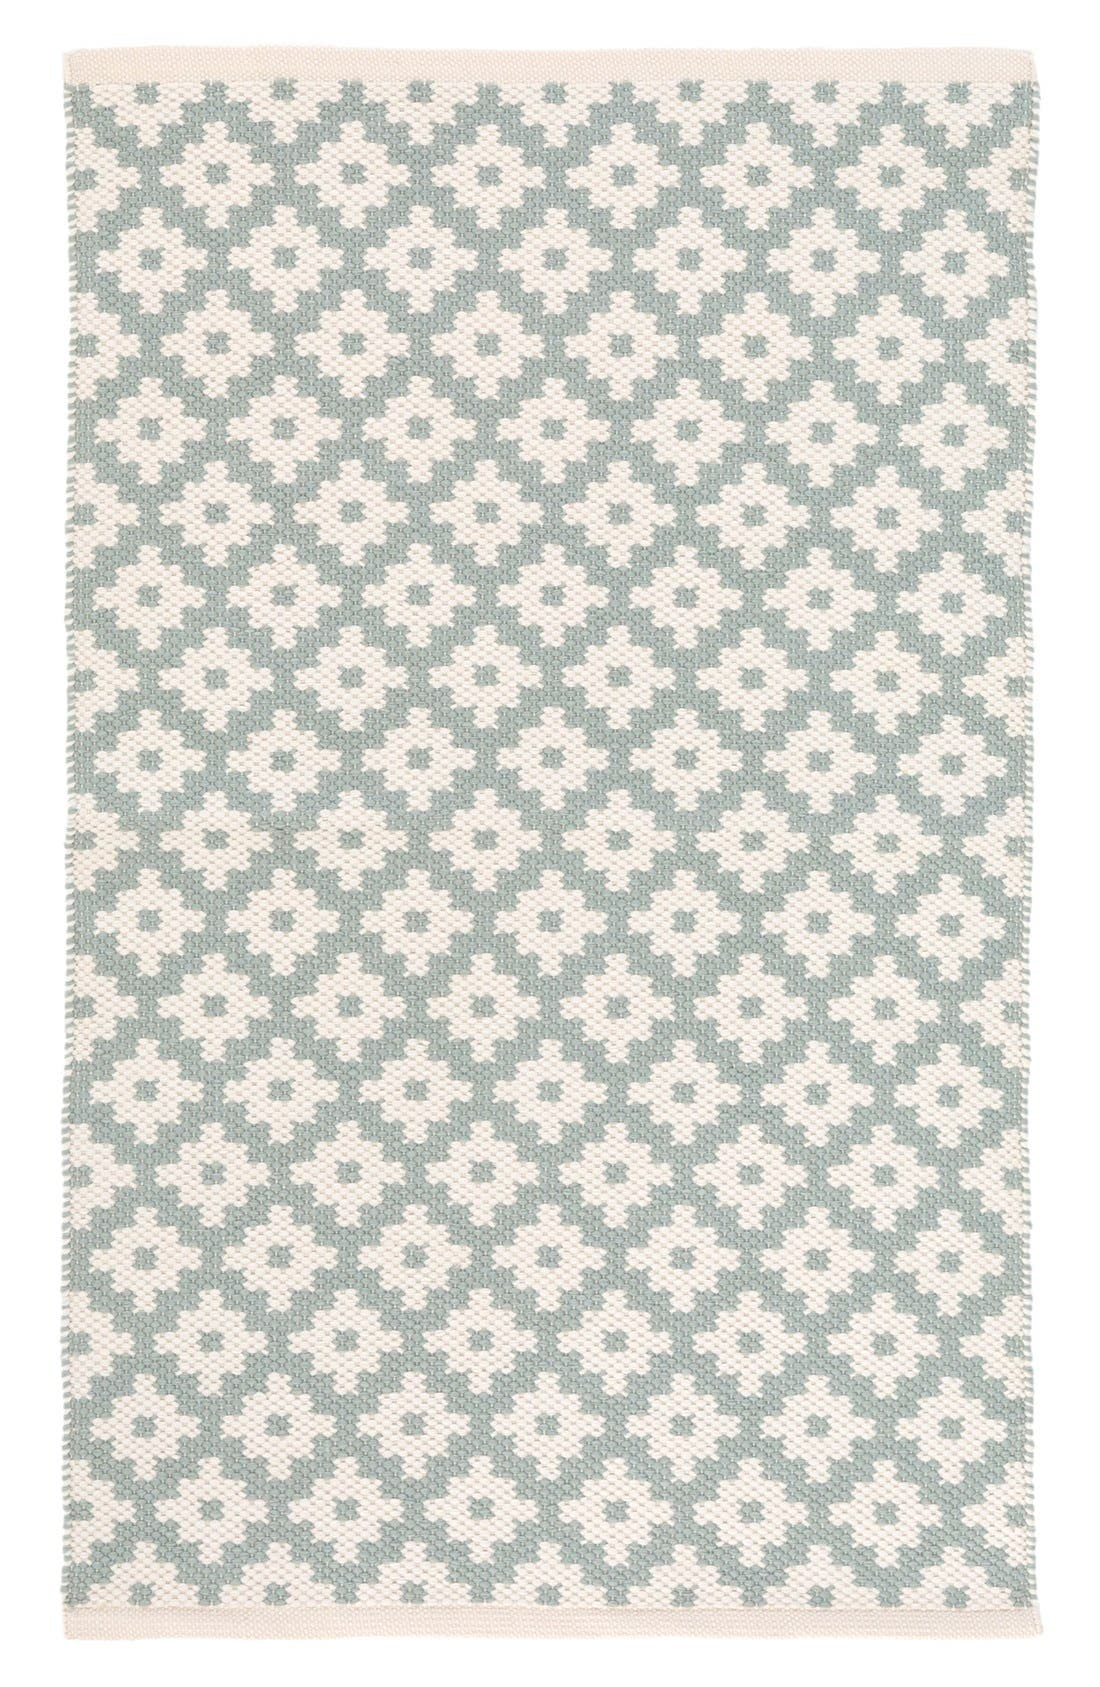 Alternate Image 1 Selected - Dash & Albert 'Samode' Indoor/Outdoor Rug